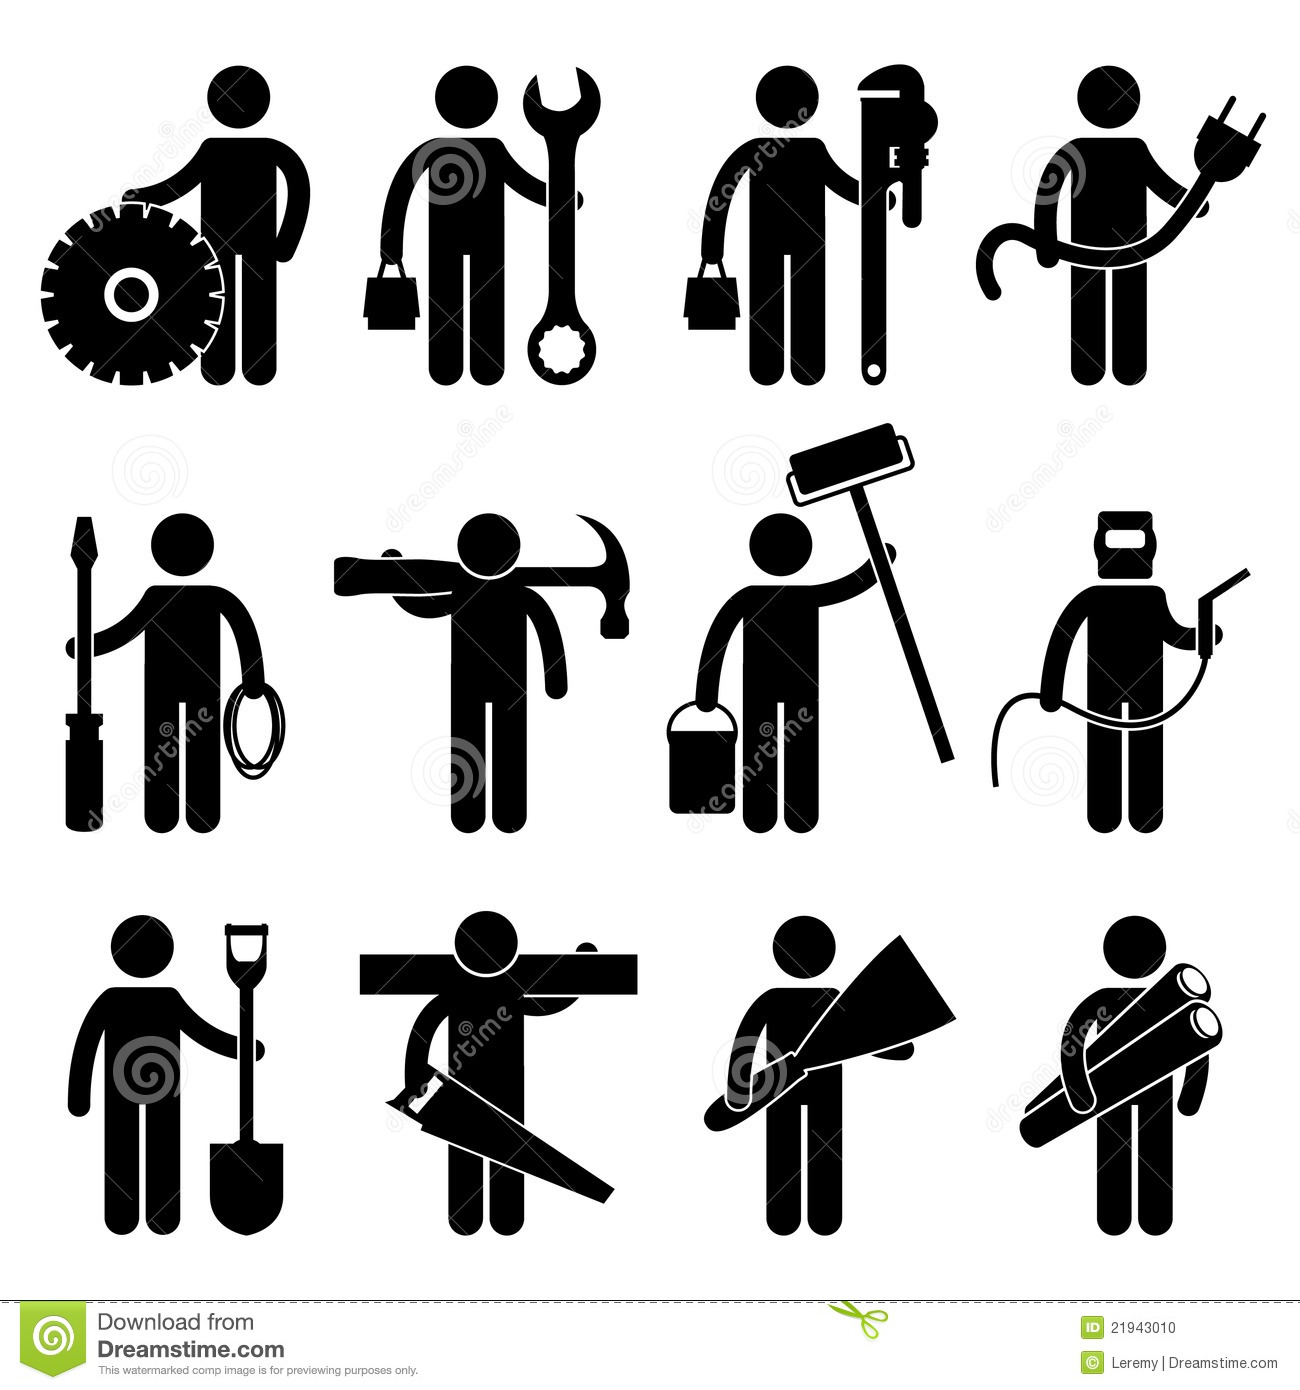 Stock Photo Construction Worker Job Pictogram Image21943010 moreover Preparing Garden Soil Zmaz70sozgoe furthermore Flat Style Thin Line Art Design 389594047 as well Political lobbyist further Employers references. on illustration career information